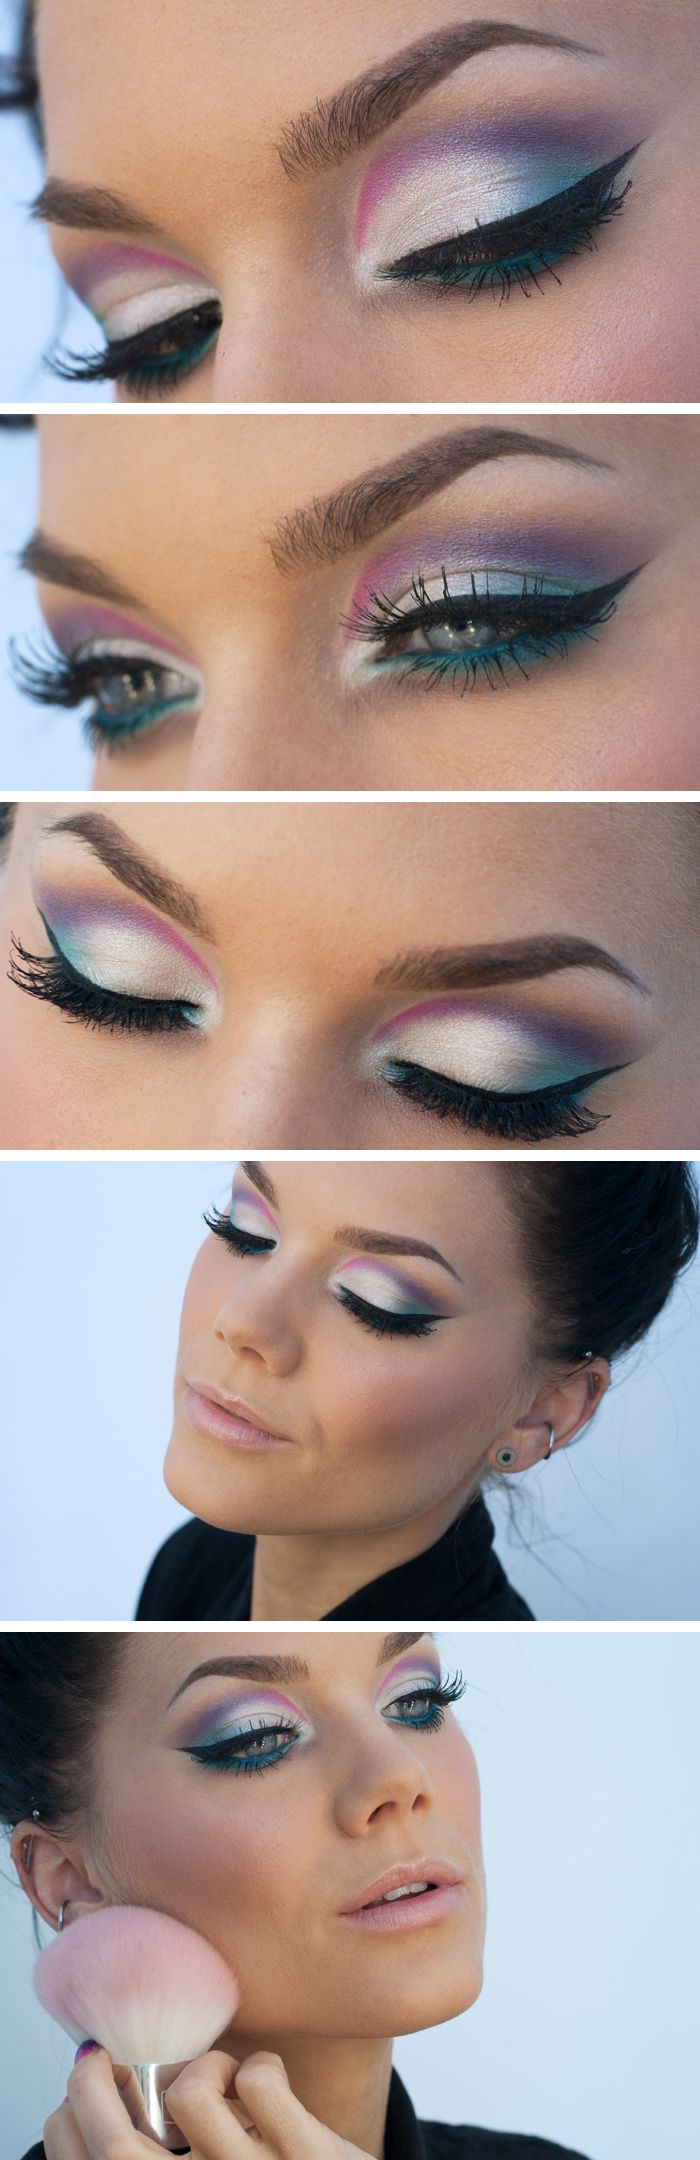 So sing me to sleep tonight   Beautiful colors and amazing makeup all together!